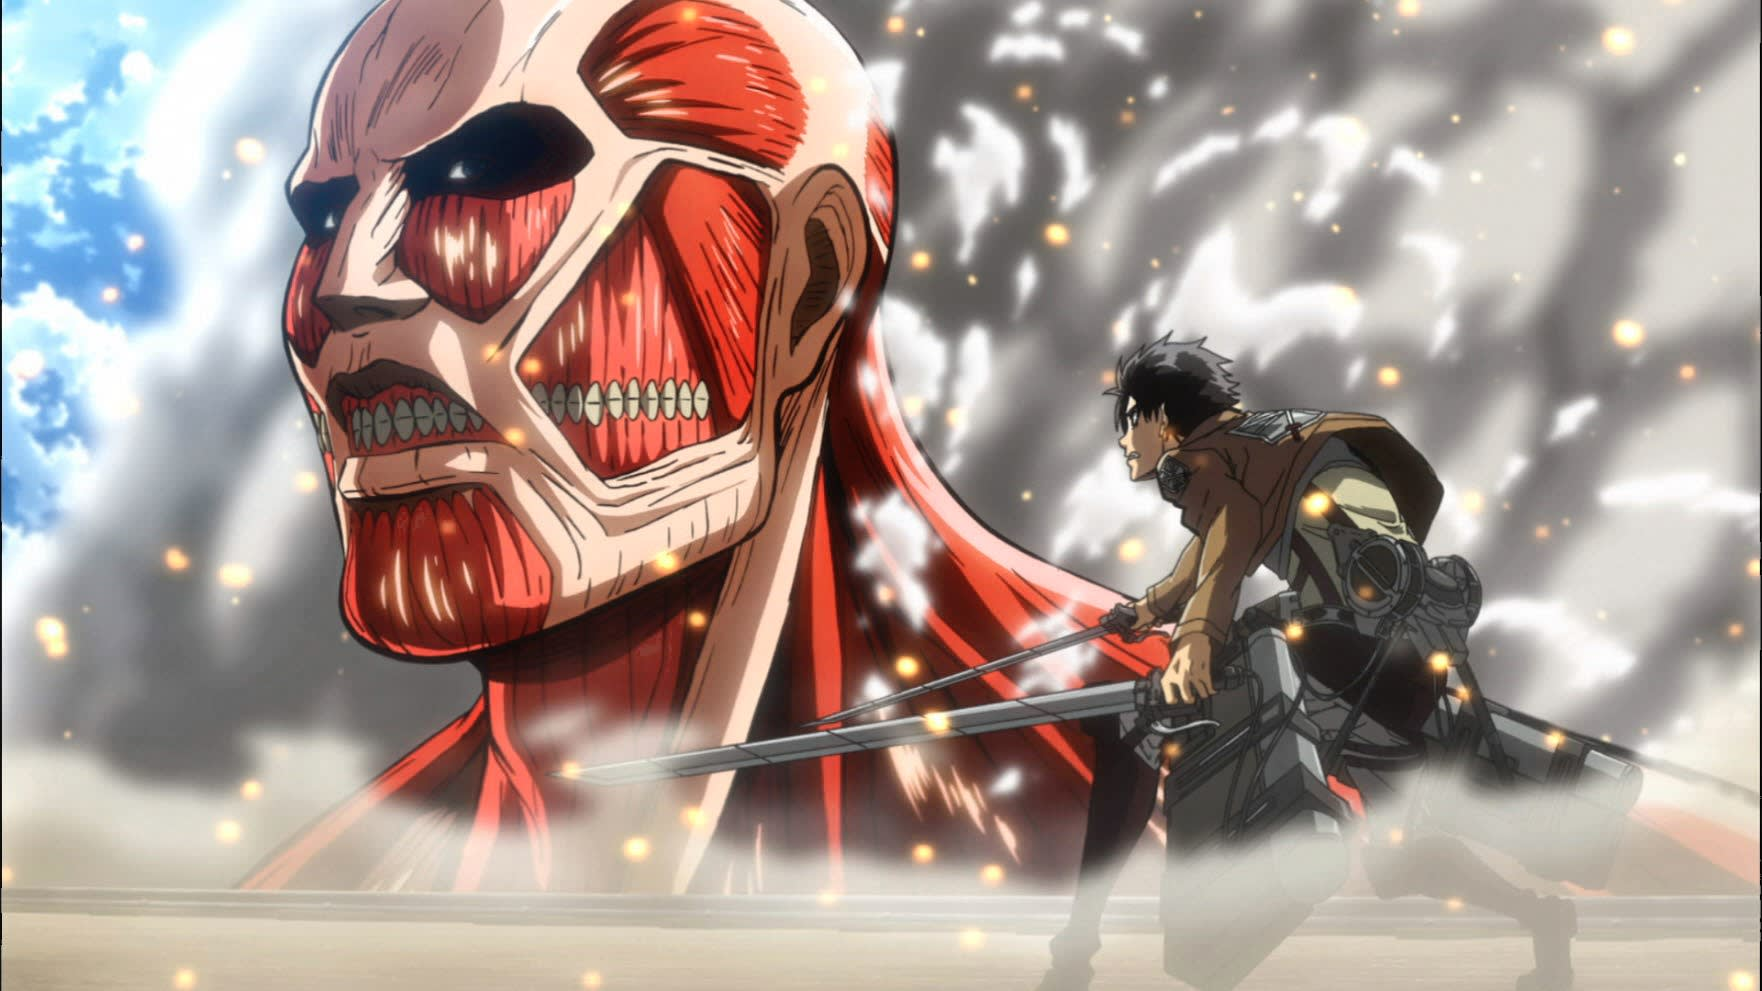 Attack on Titan' creator sees bright future for Japan's anime industry -  Nikkei Asia